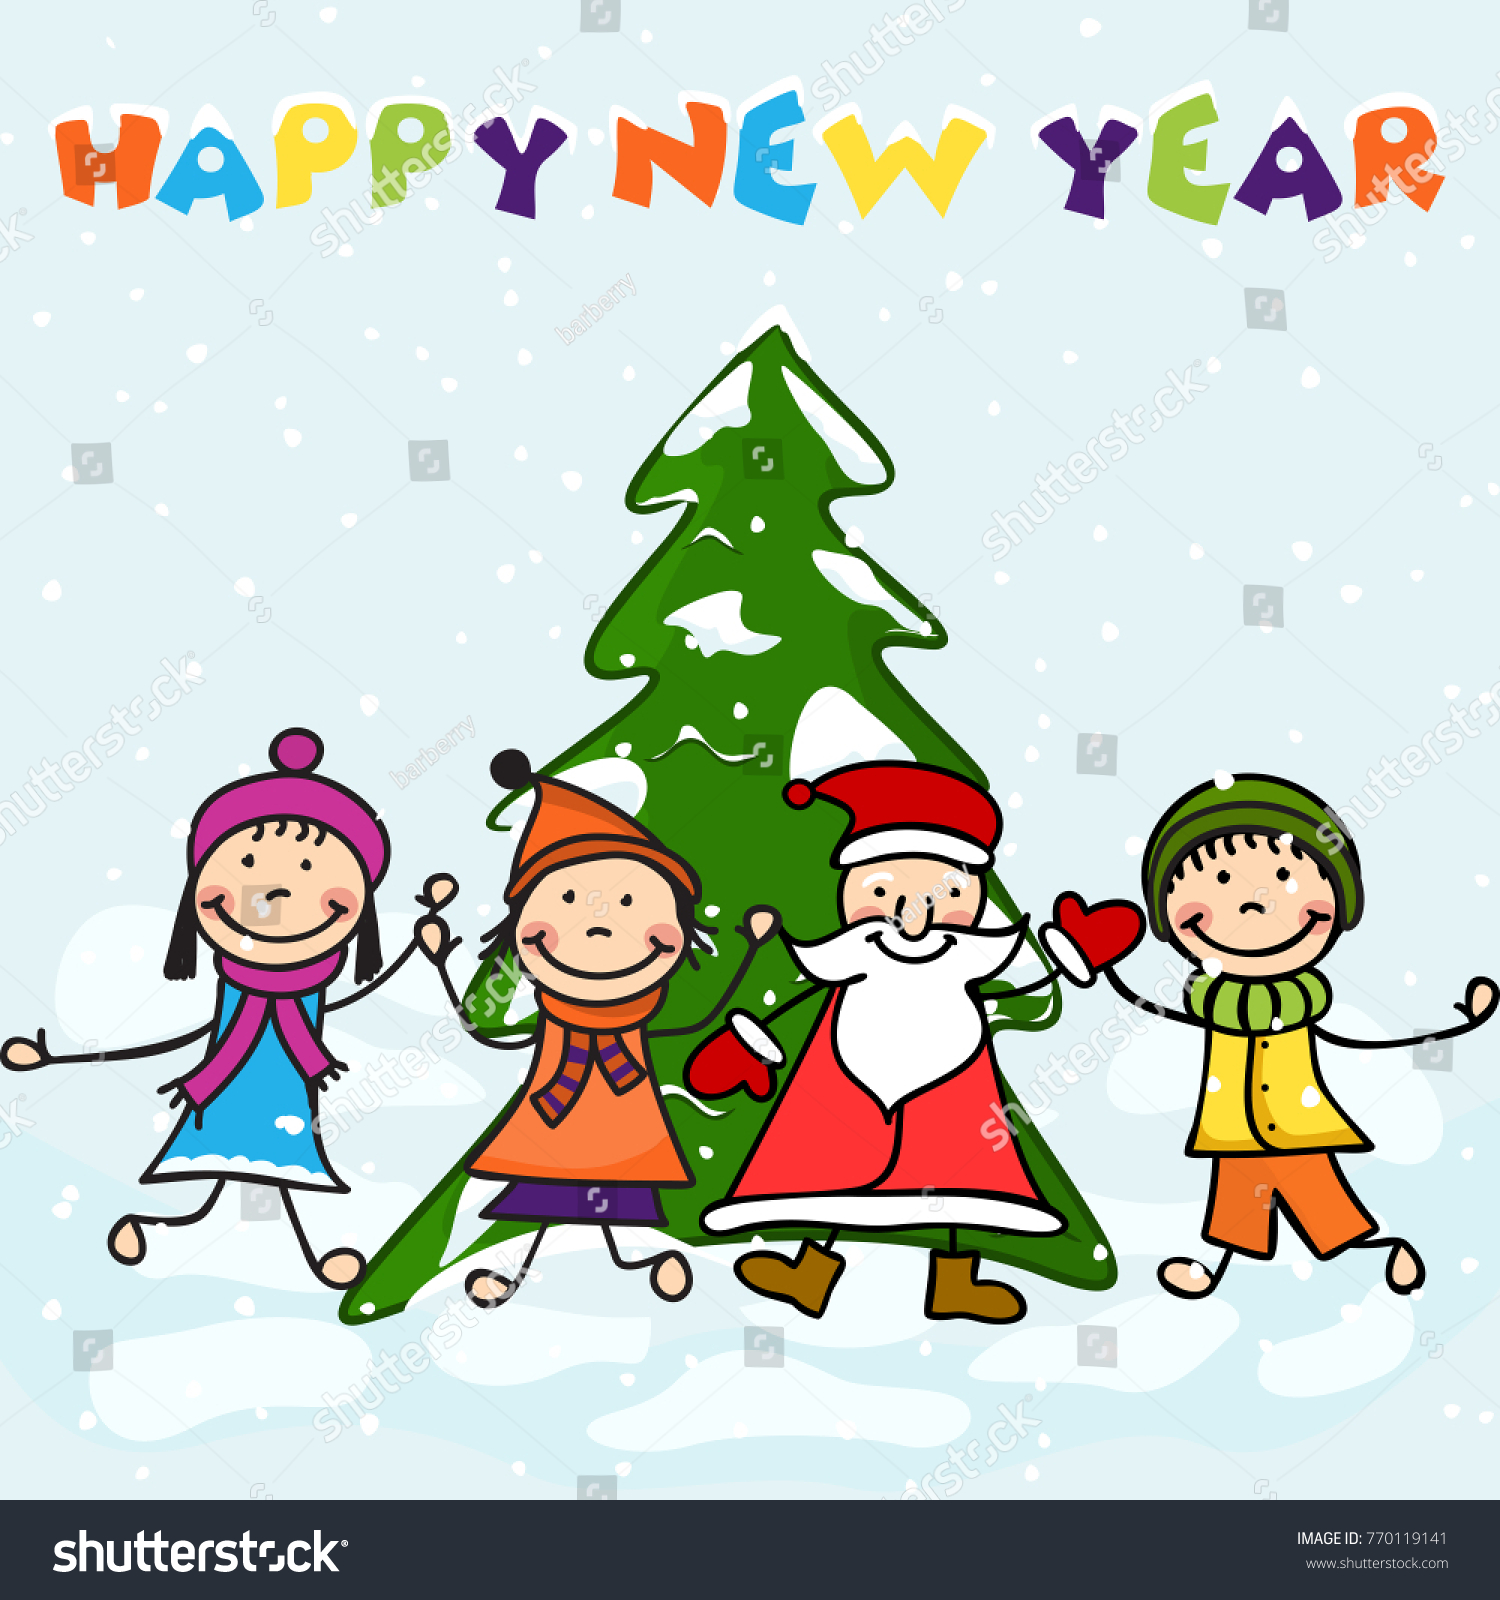 happy new year 2018 celebration background with smiling kids with santa claus